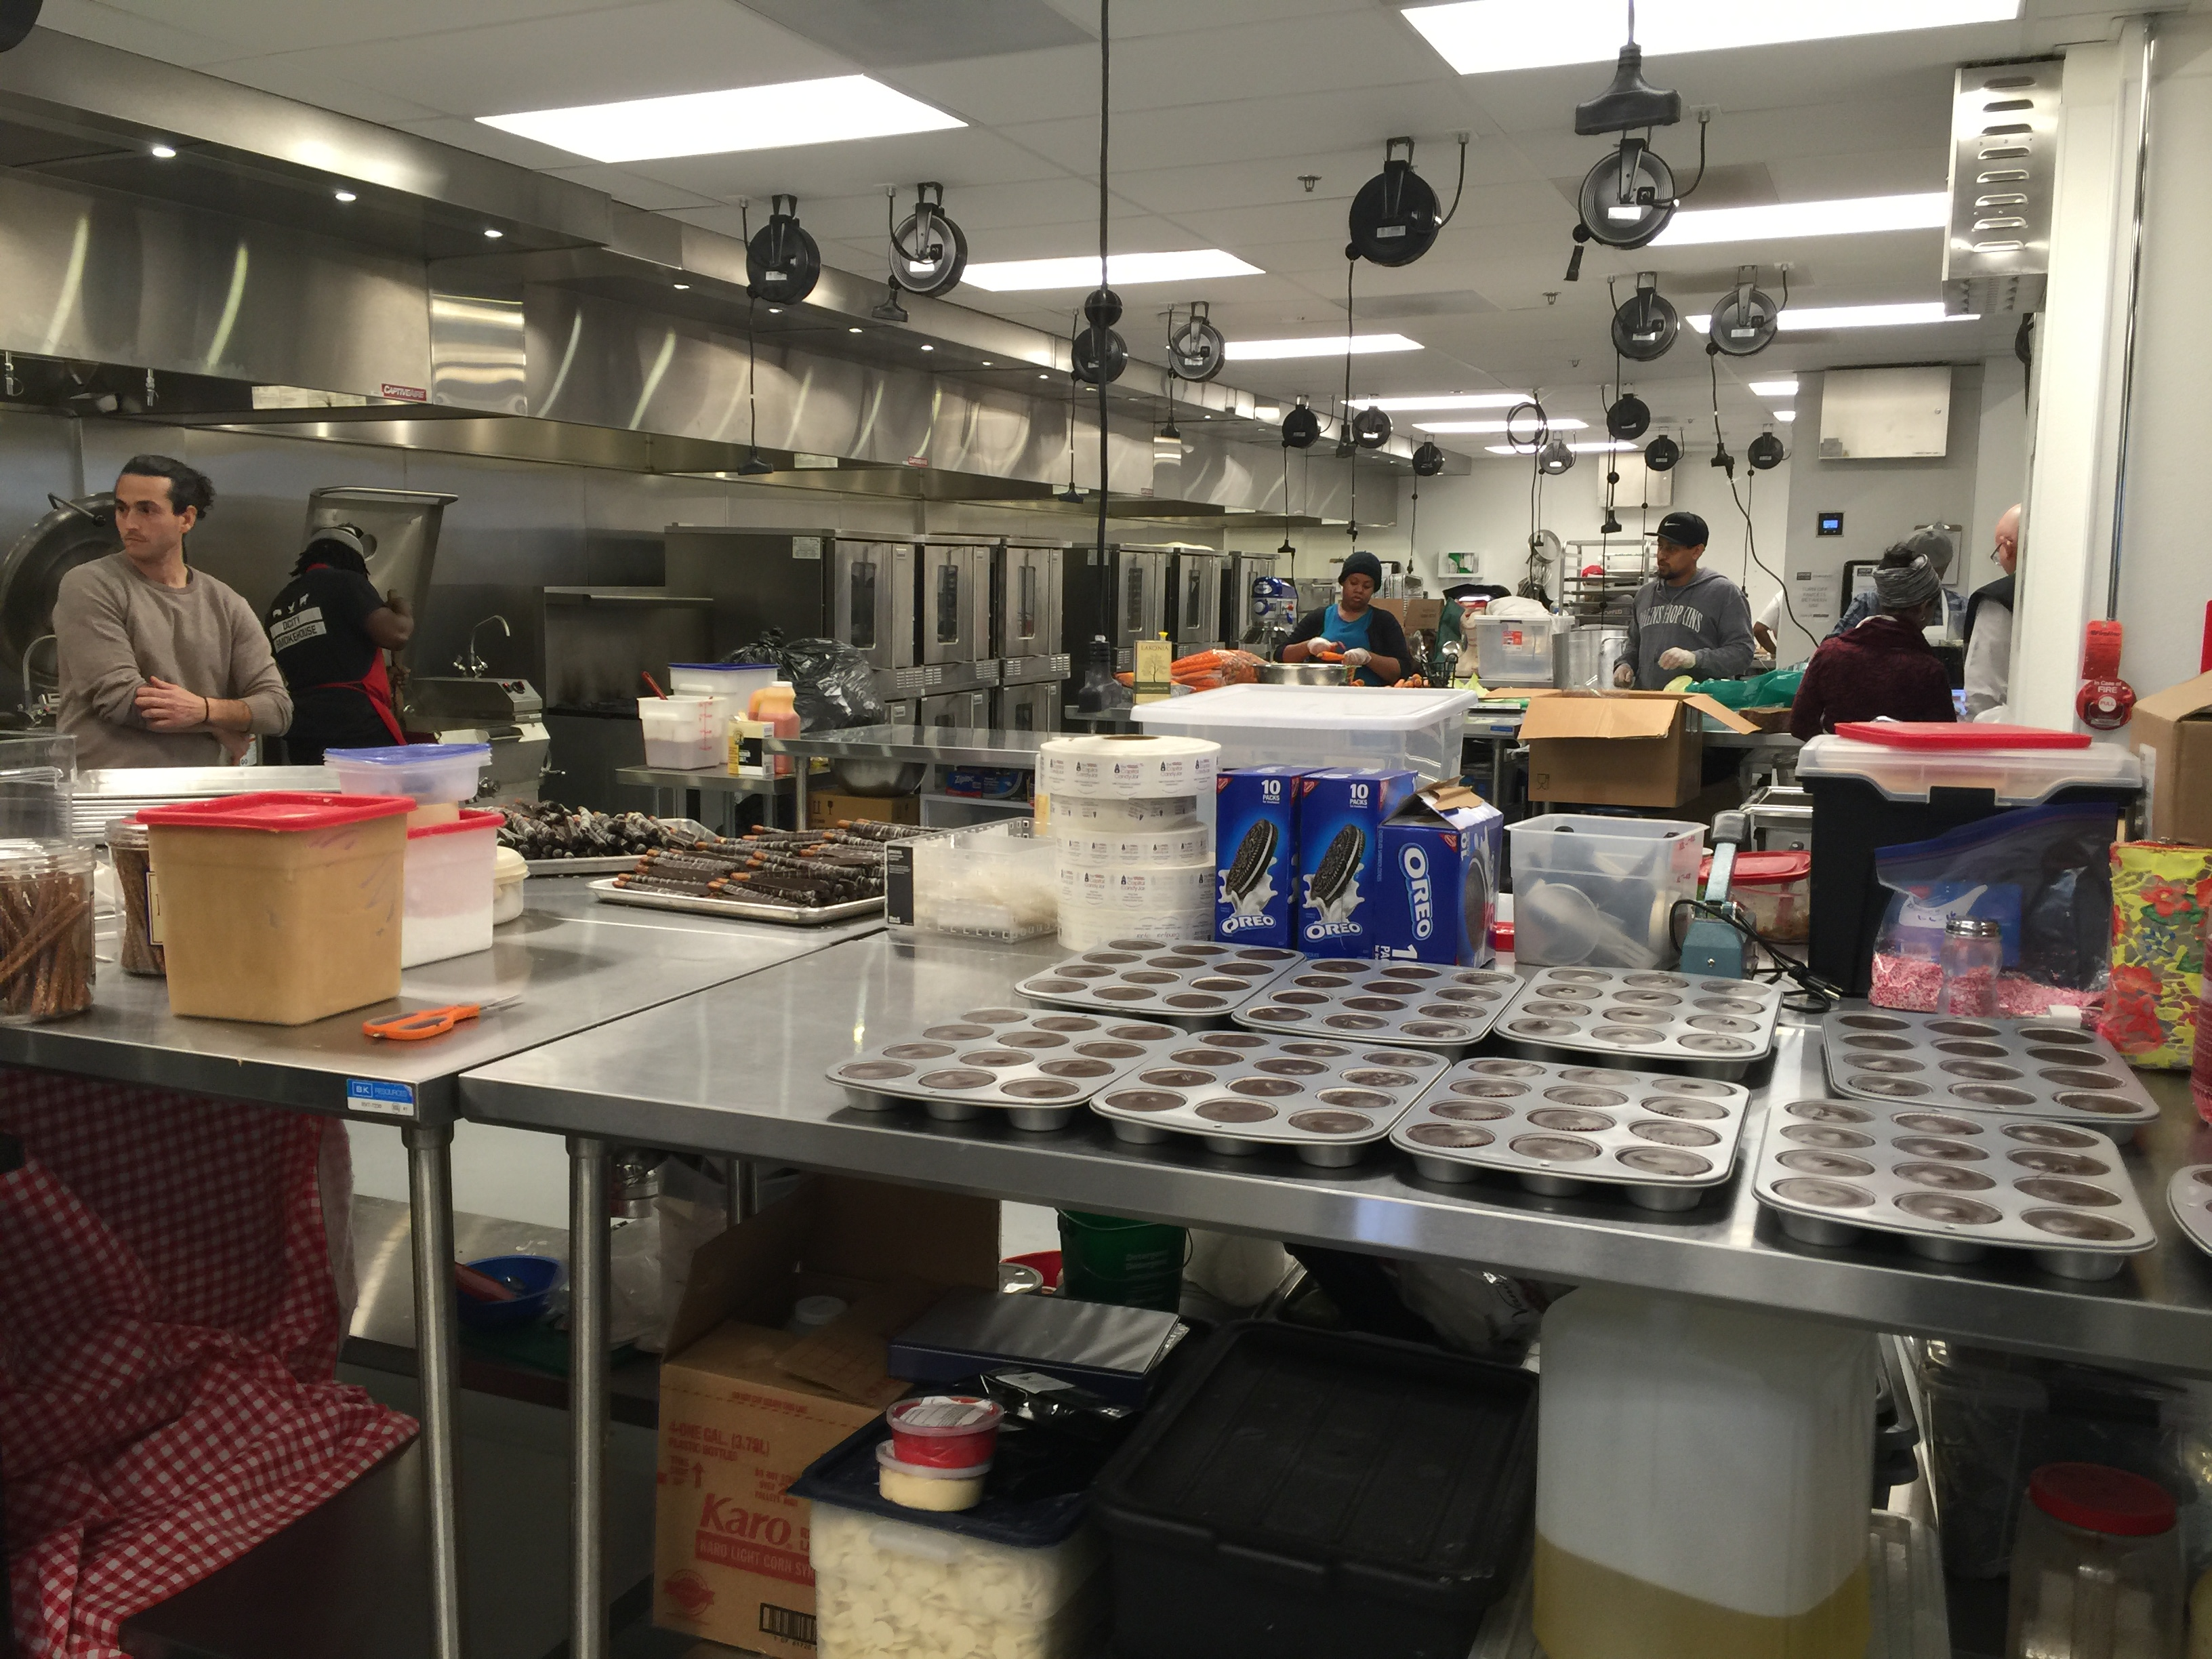 union kitchen provides recipe for success for food entrepreneurs